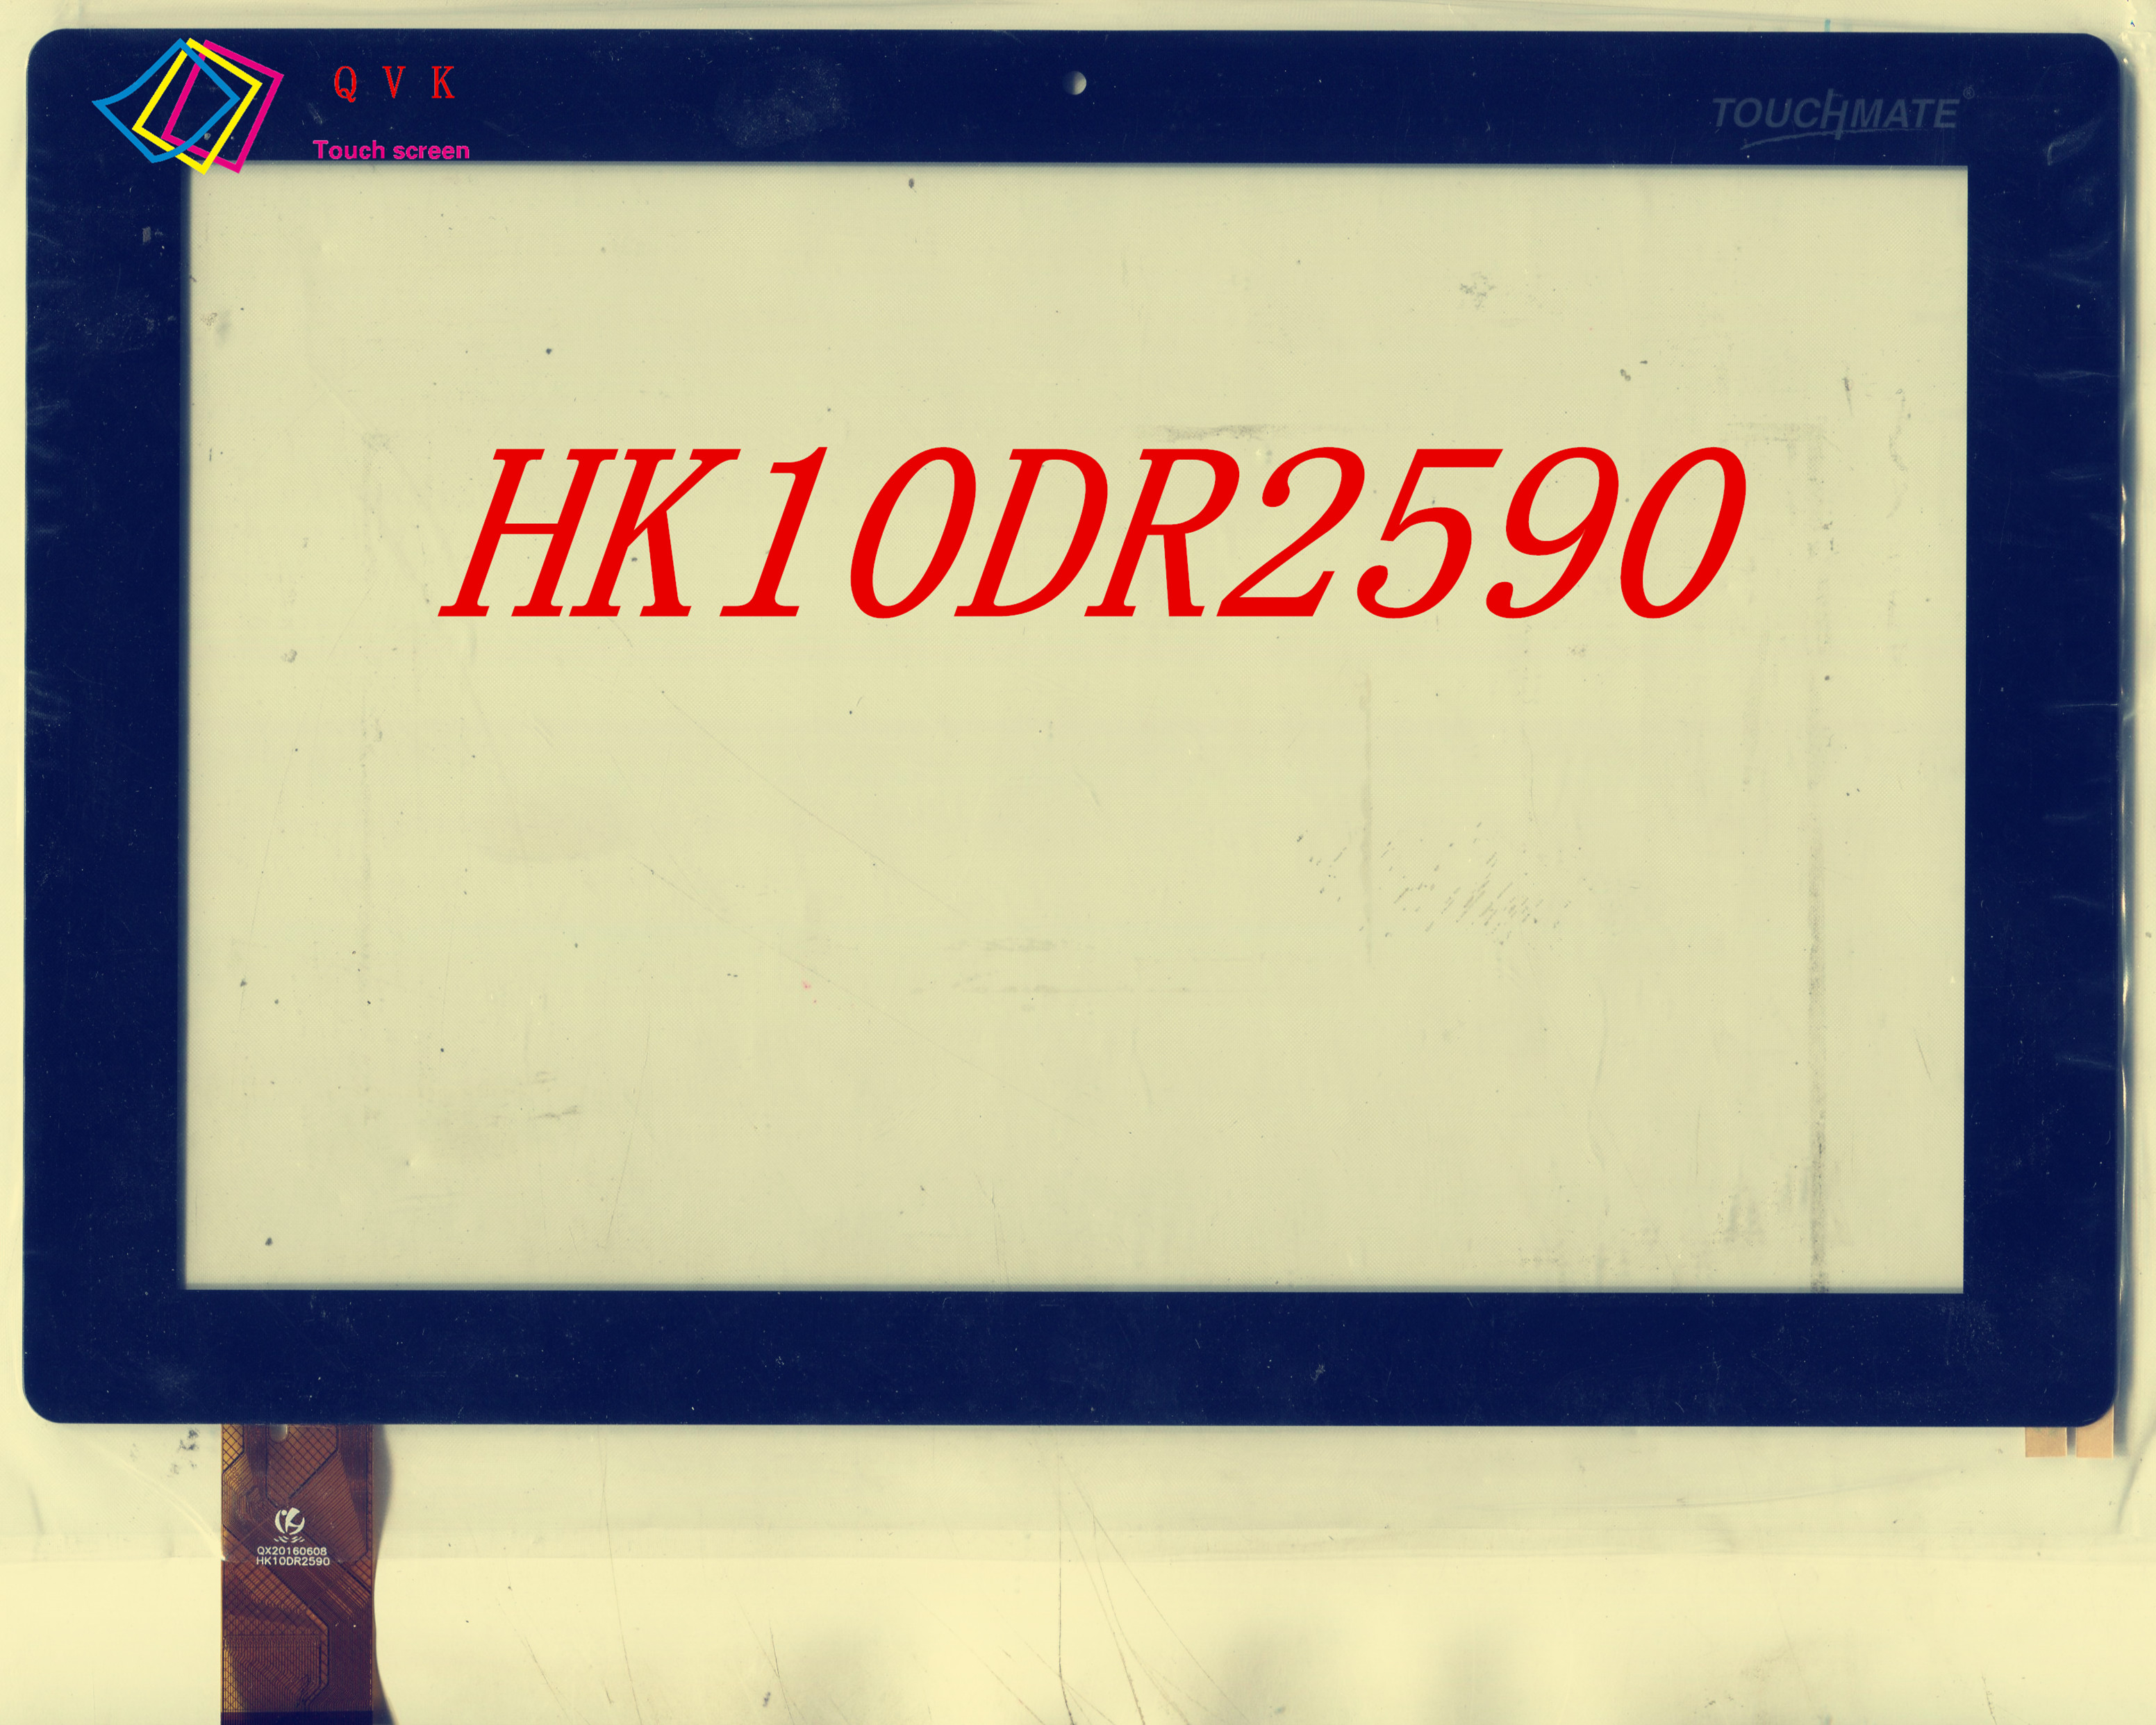 100 original new stock 10 1 inch win8 HK10DR2590 QX20150730 tablet PC touch screen digitizer panel